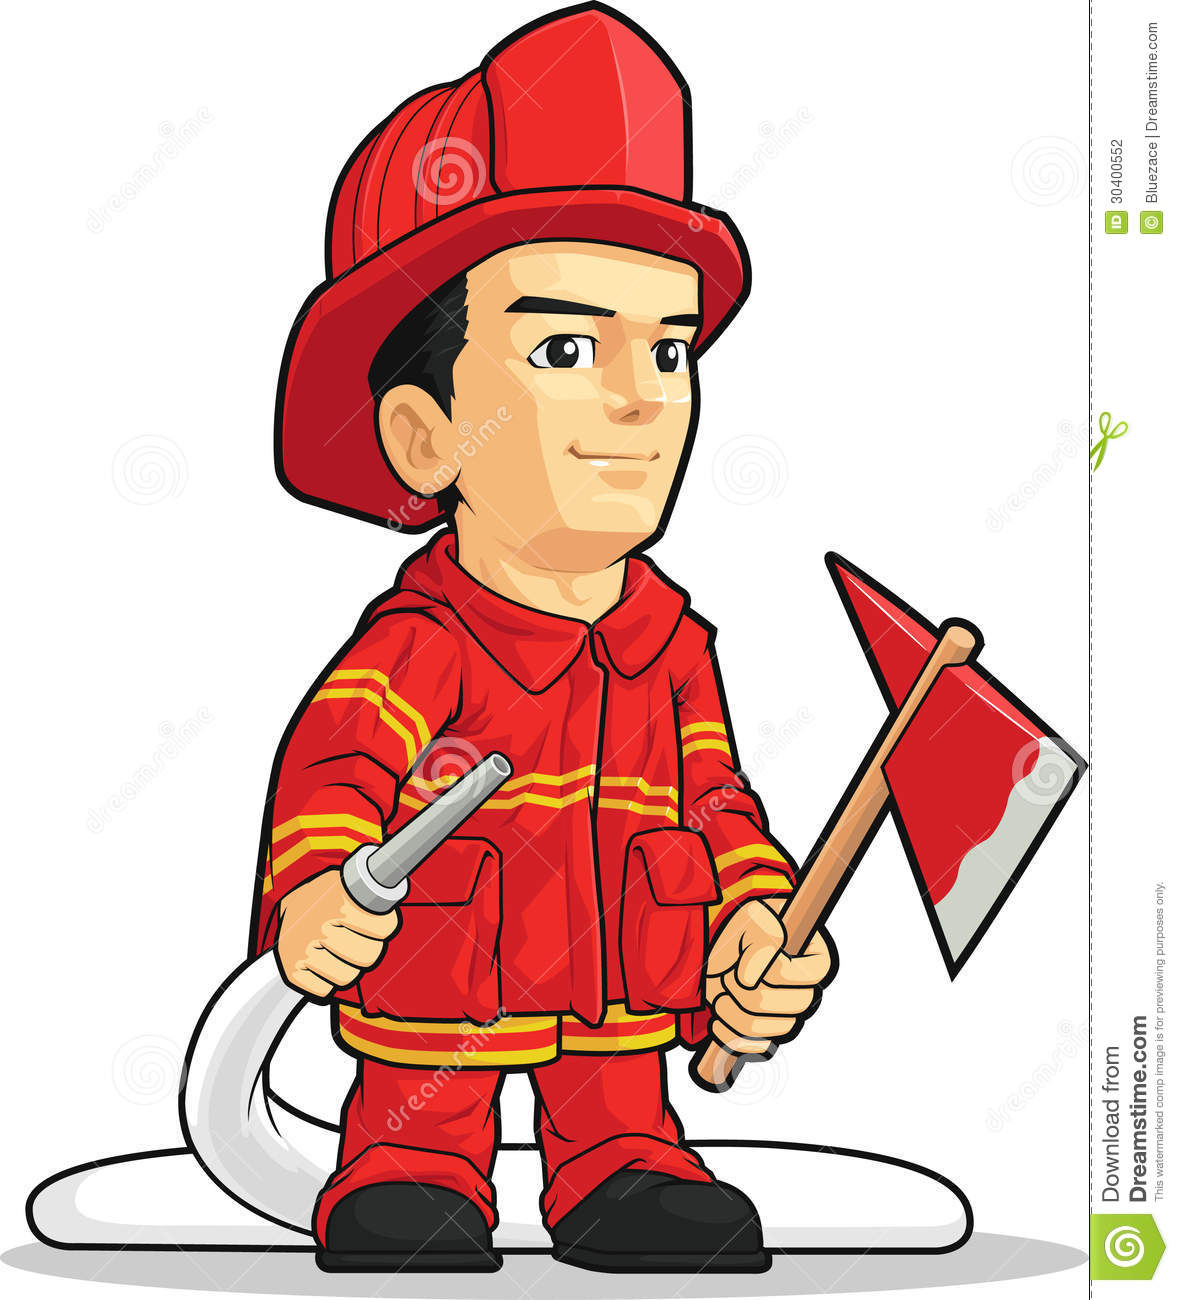 4f02f852f2f61 A vector image of a firefighter holding an axe and a water spray. Drawn in  cartoon style